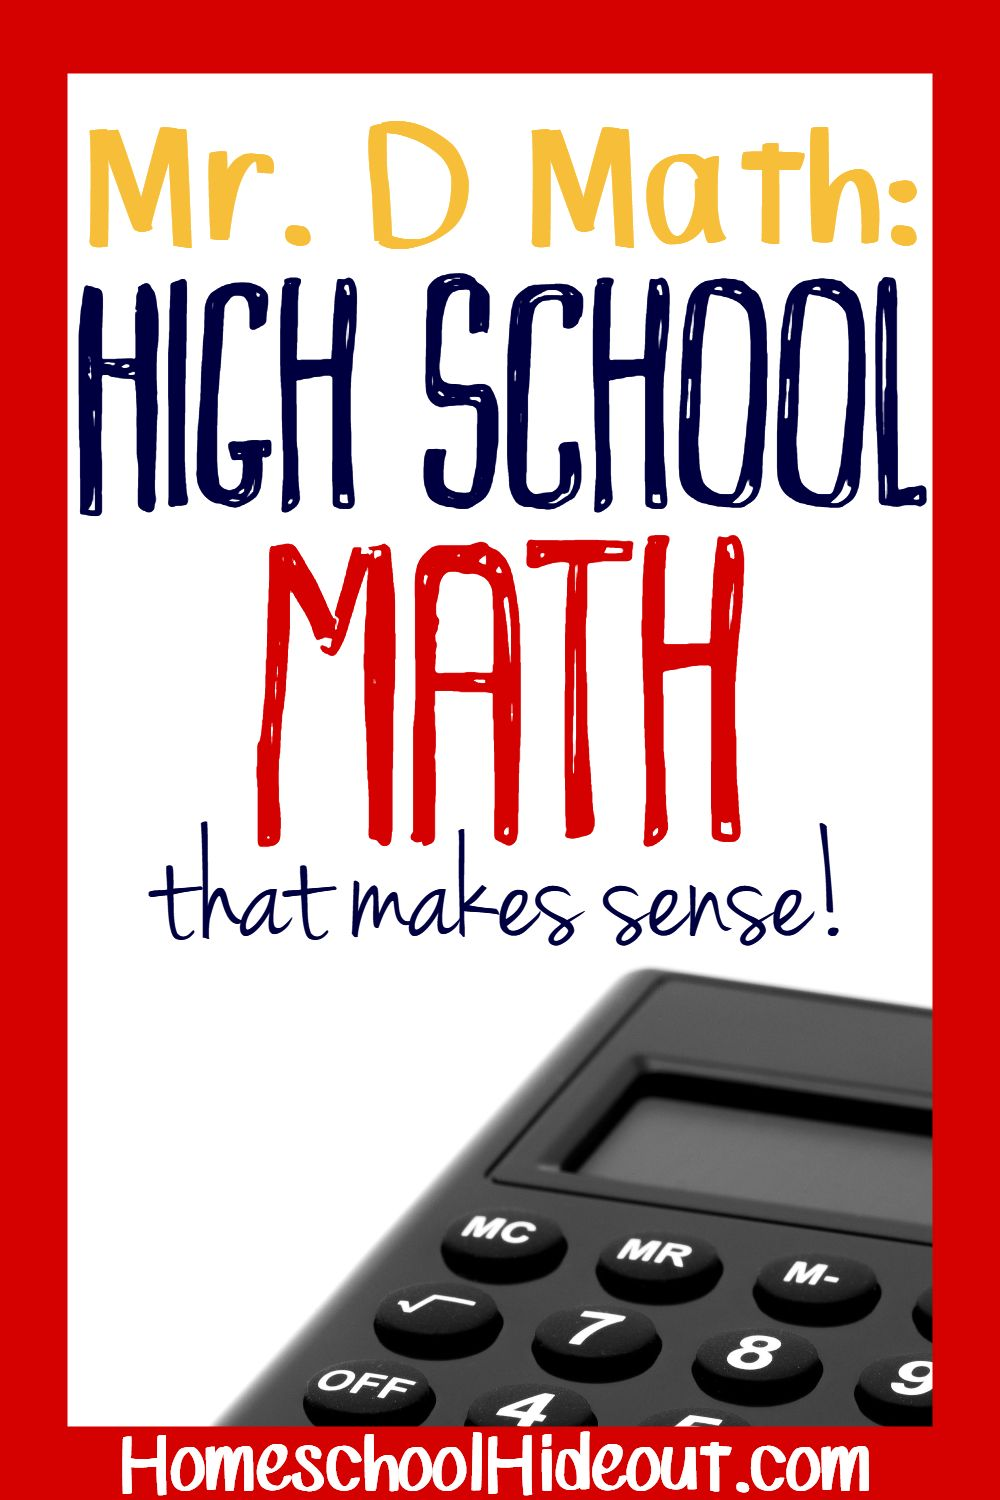 Mr. D Math Online Classes for Middle & High Schoolers